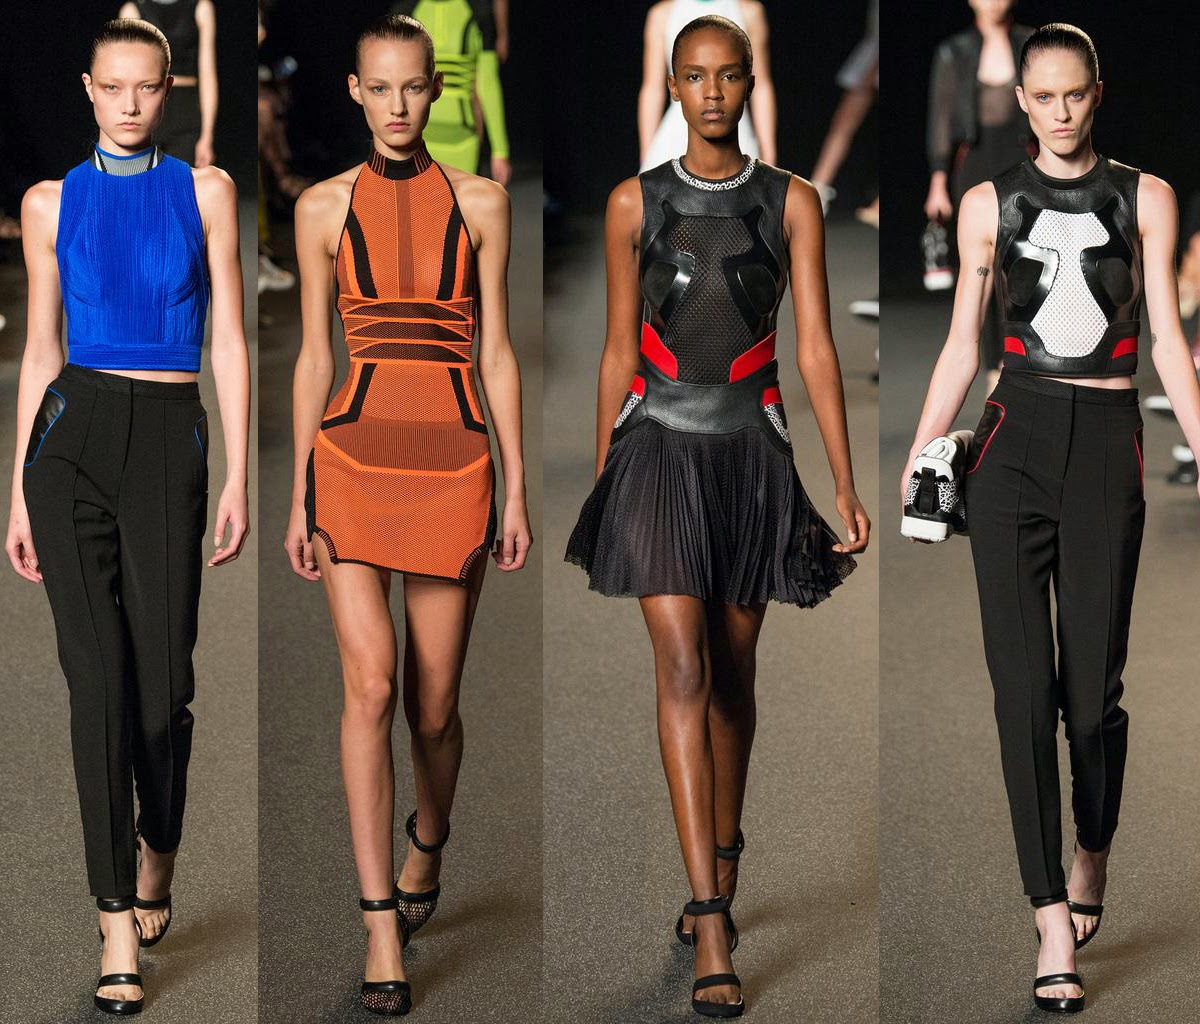 Alexander wang, new york fashion week, nyfw, sports luxe, sporty chic, colour palette, ss15, spring summer, 2015, womens clothing, fashion, fashion blog, fashion blogger, lesimplyclassy, le simply classy, samira hoque, fashion review, nicki minaj, rihanna, die antwoord, front row, fashion show, celebrities, models, runway, alexander wang bags, alexander wang shoes, alexander wang sale, t by alexander wang, alexander wang replica, alexander wang dress, alexander wang die antwoord, alexander wang emile, aila wang, alexander wang fashion show, alexander wang catwalk show, 2014,  alexander wang runway, cathy horyn alexander wang, alexander wang runway show, alexander wang spring summer 2012, nyfw fashion, nyfw spring 2014 schedule, nyfw street style, nyfw ss14, nyfw september 2013, instagram